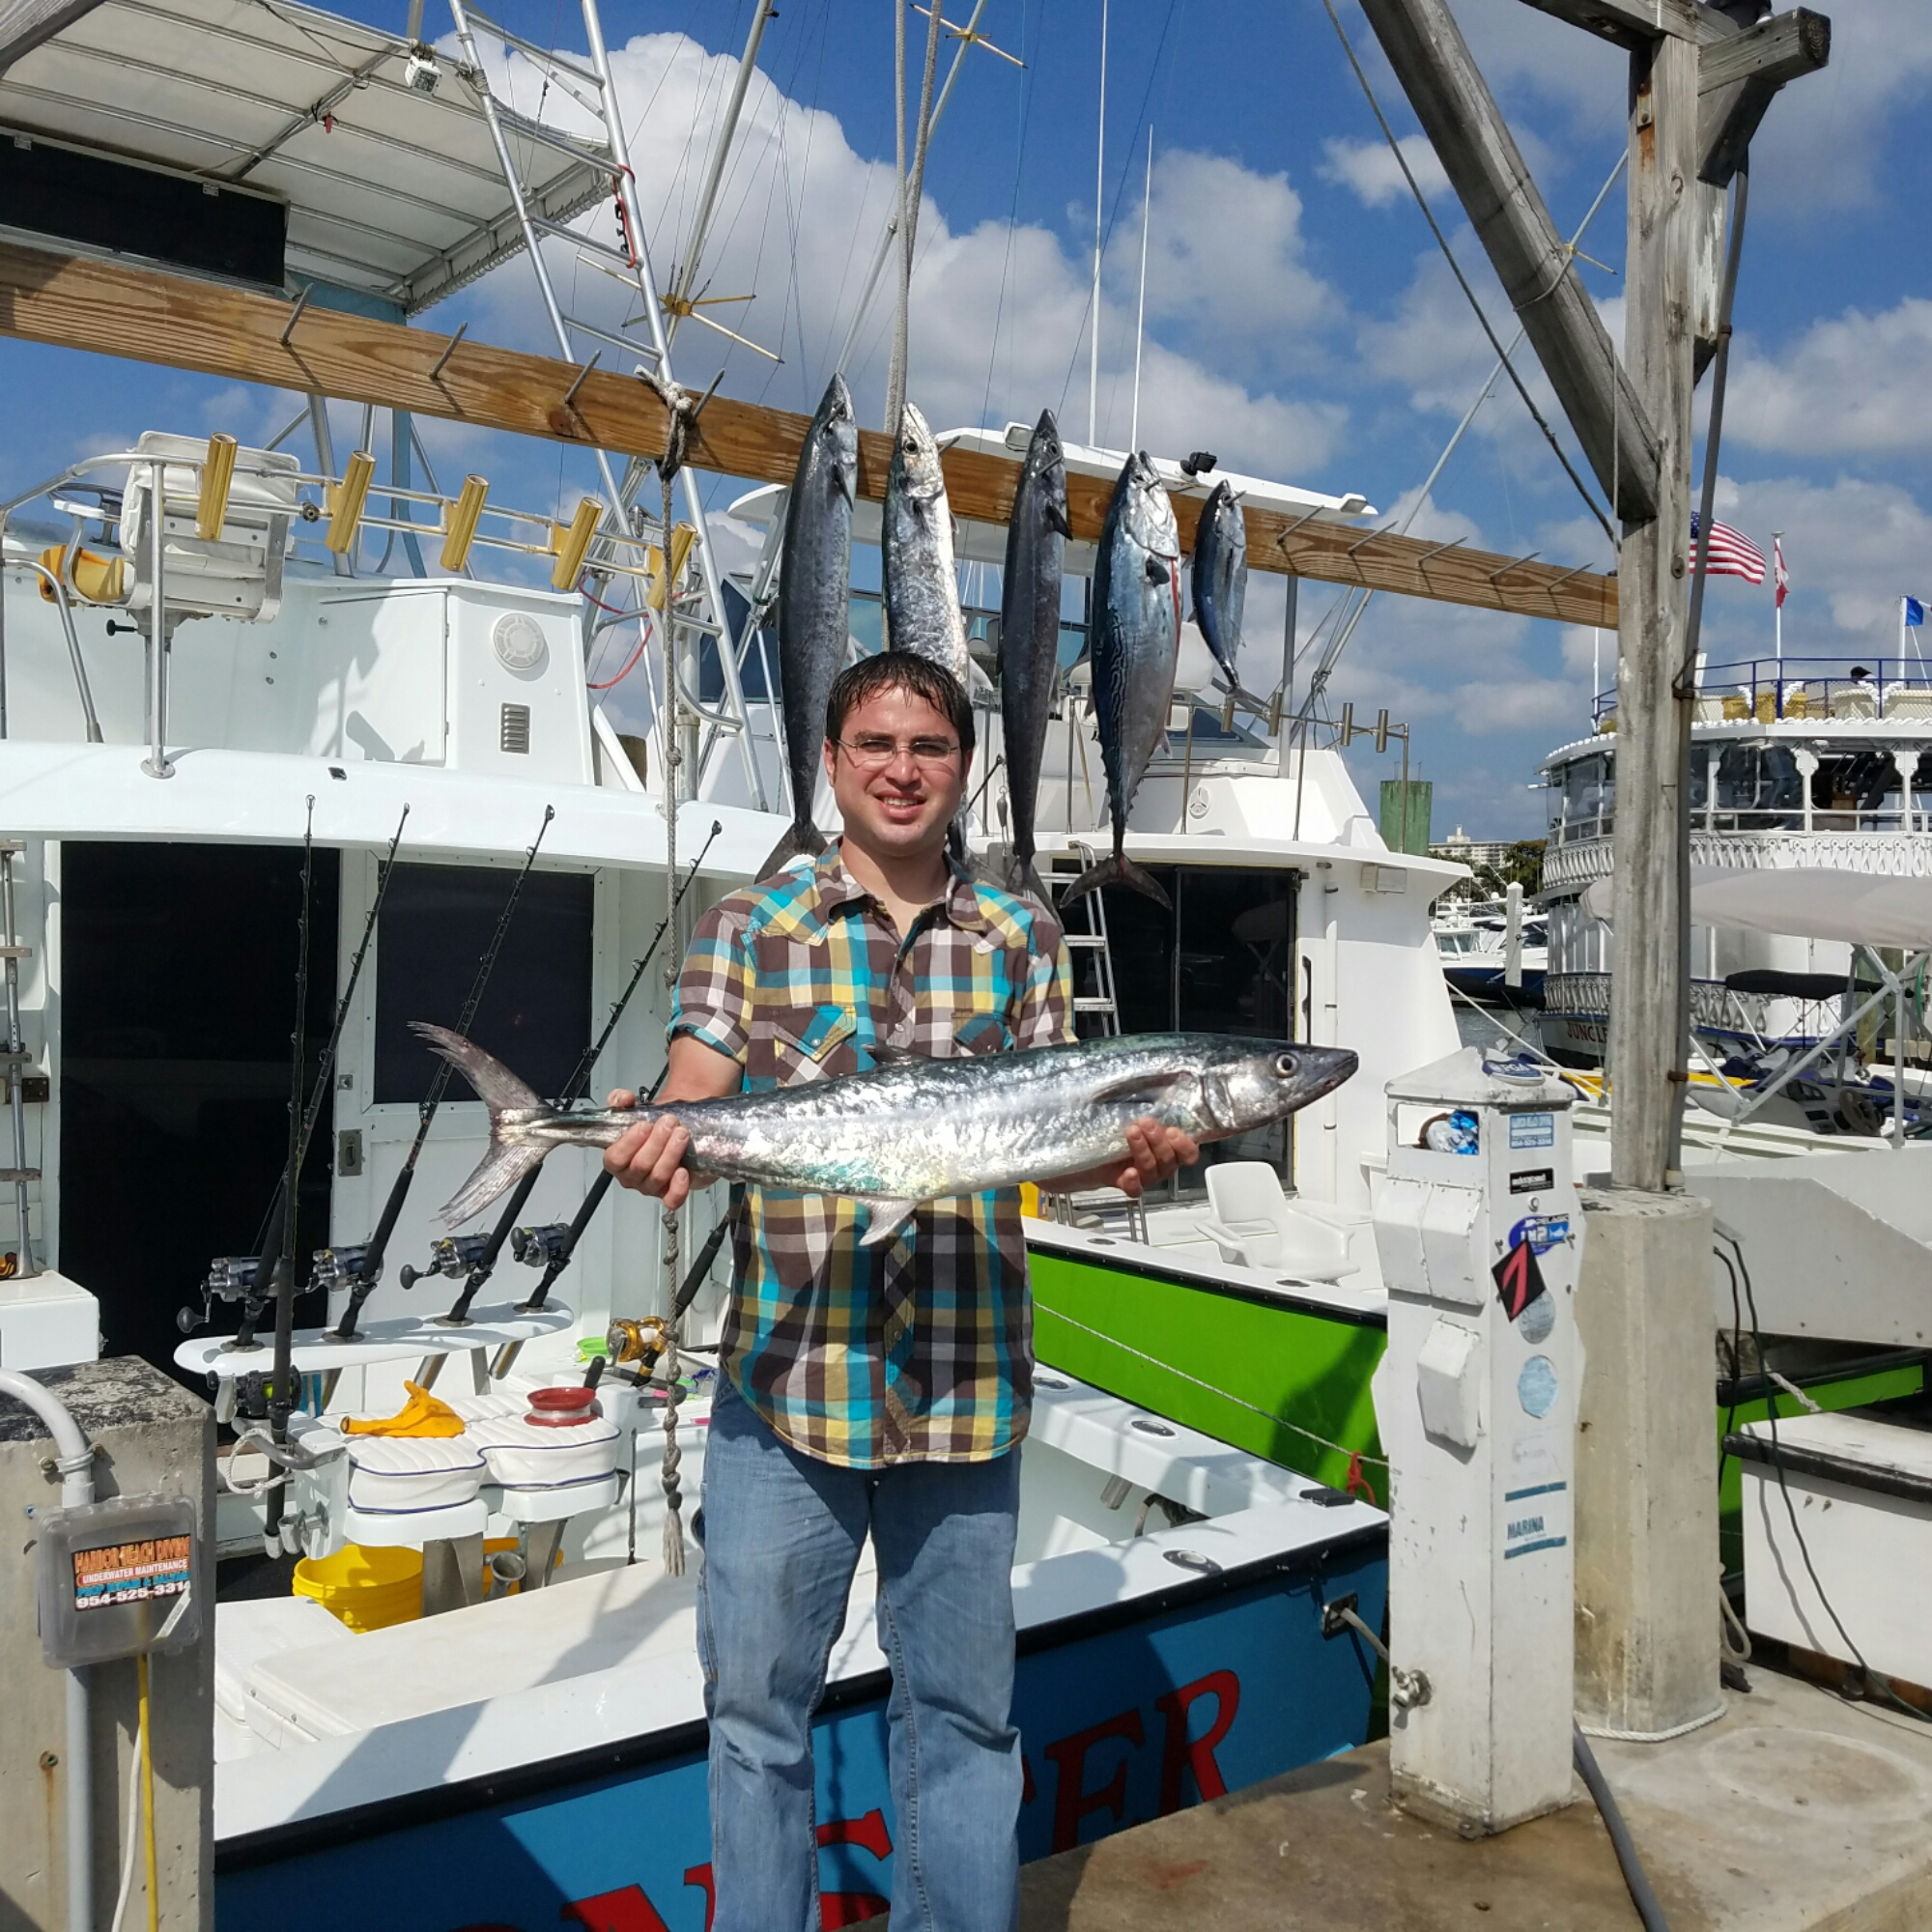 Fort lauderdale deep sea fishing charters for Ft lauderdale fishing charters